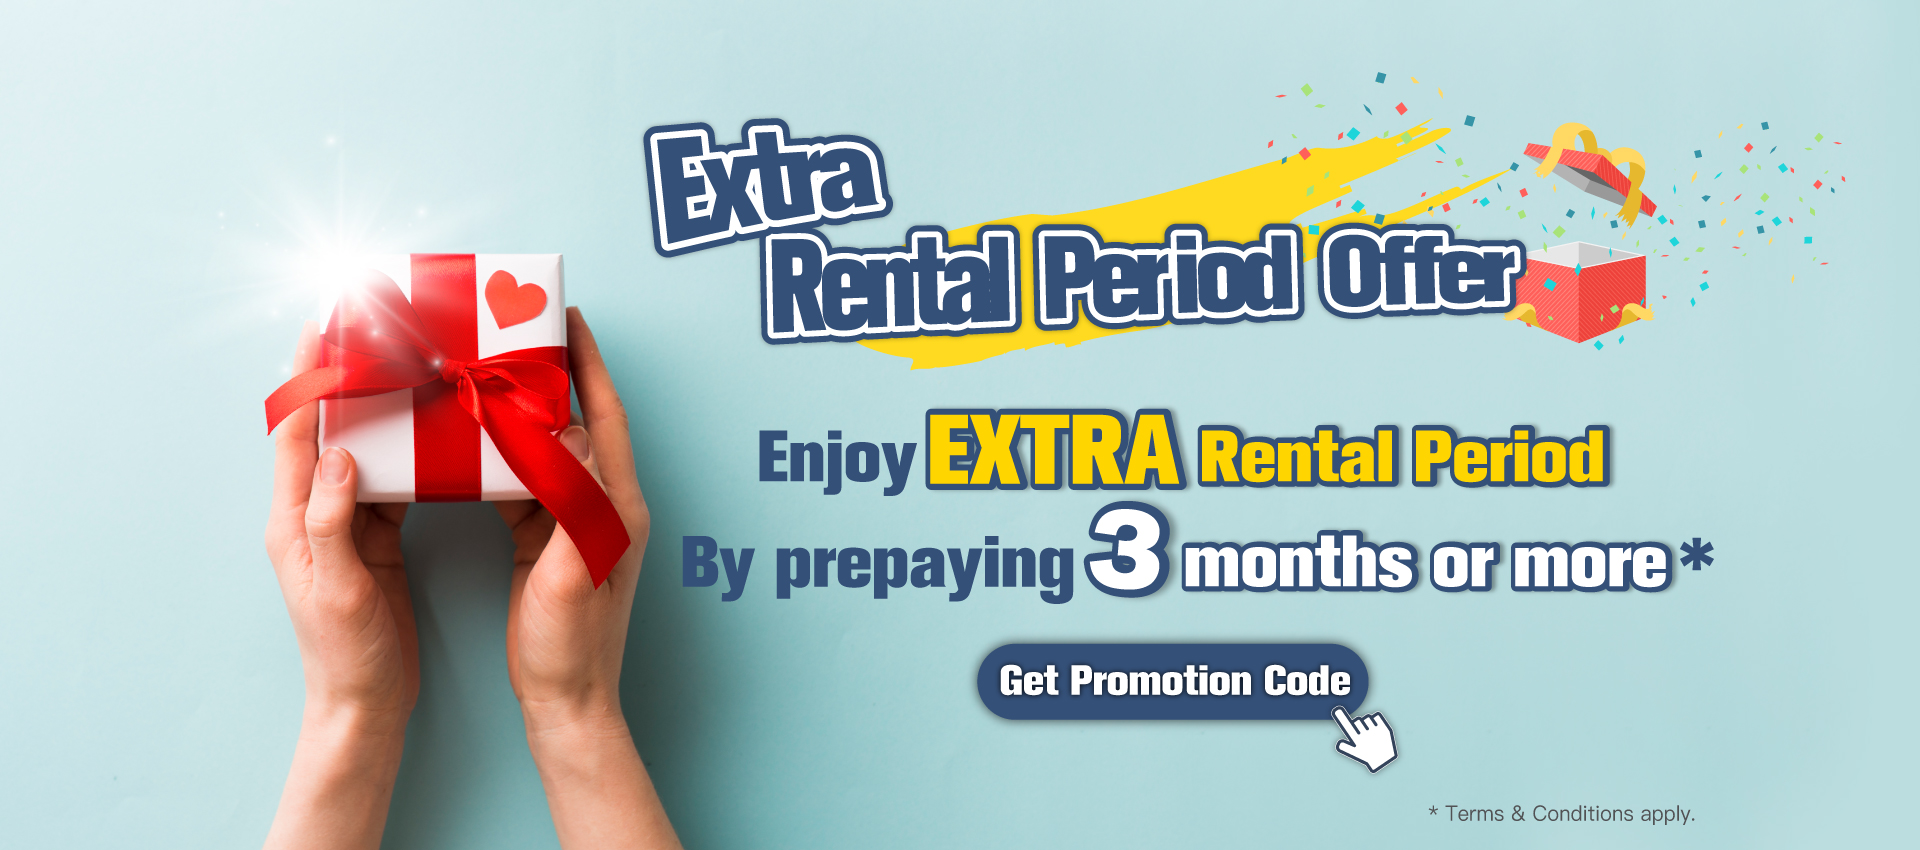 Extra Rental Period Offer : Enjoy EXTRA Rental Period by prepaying 3 months or more